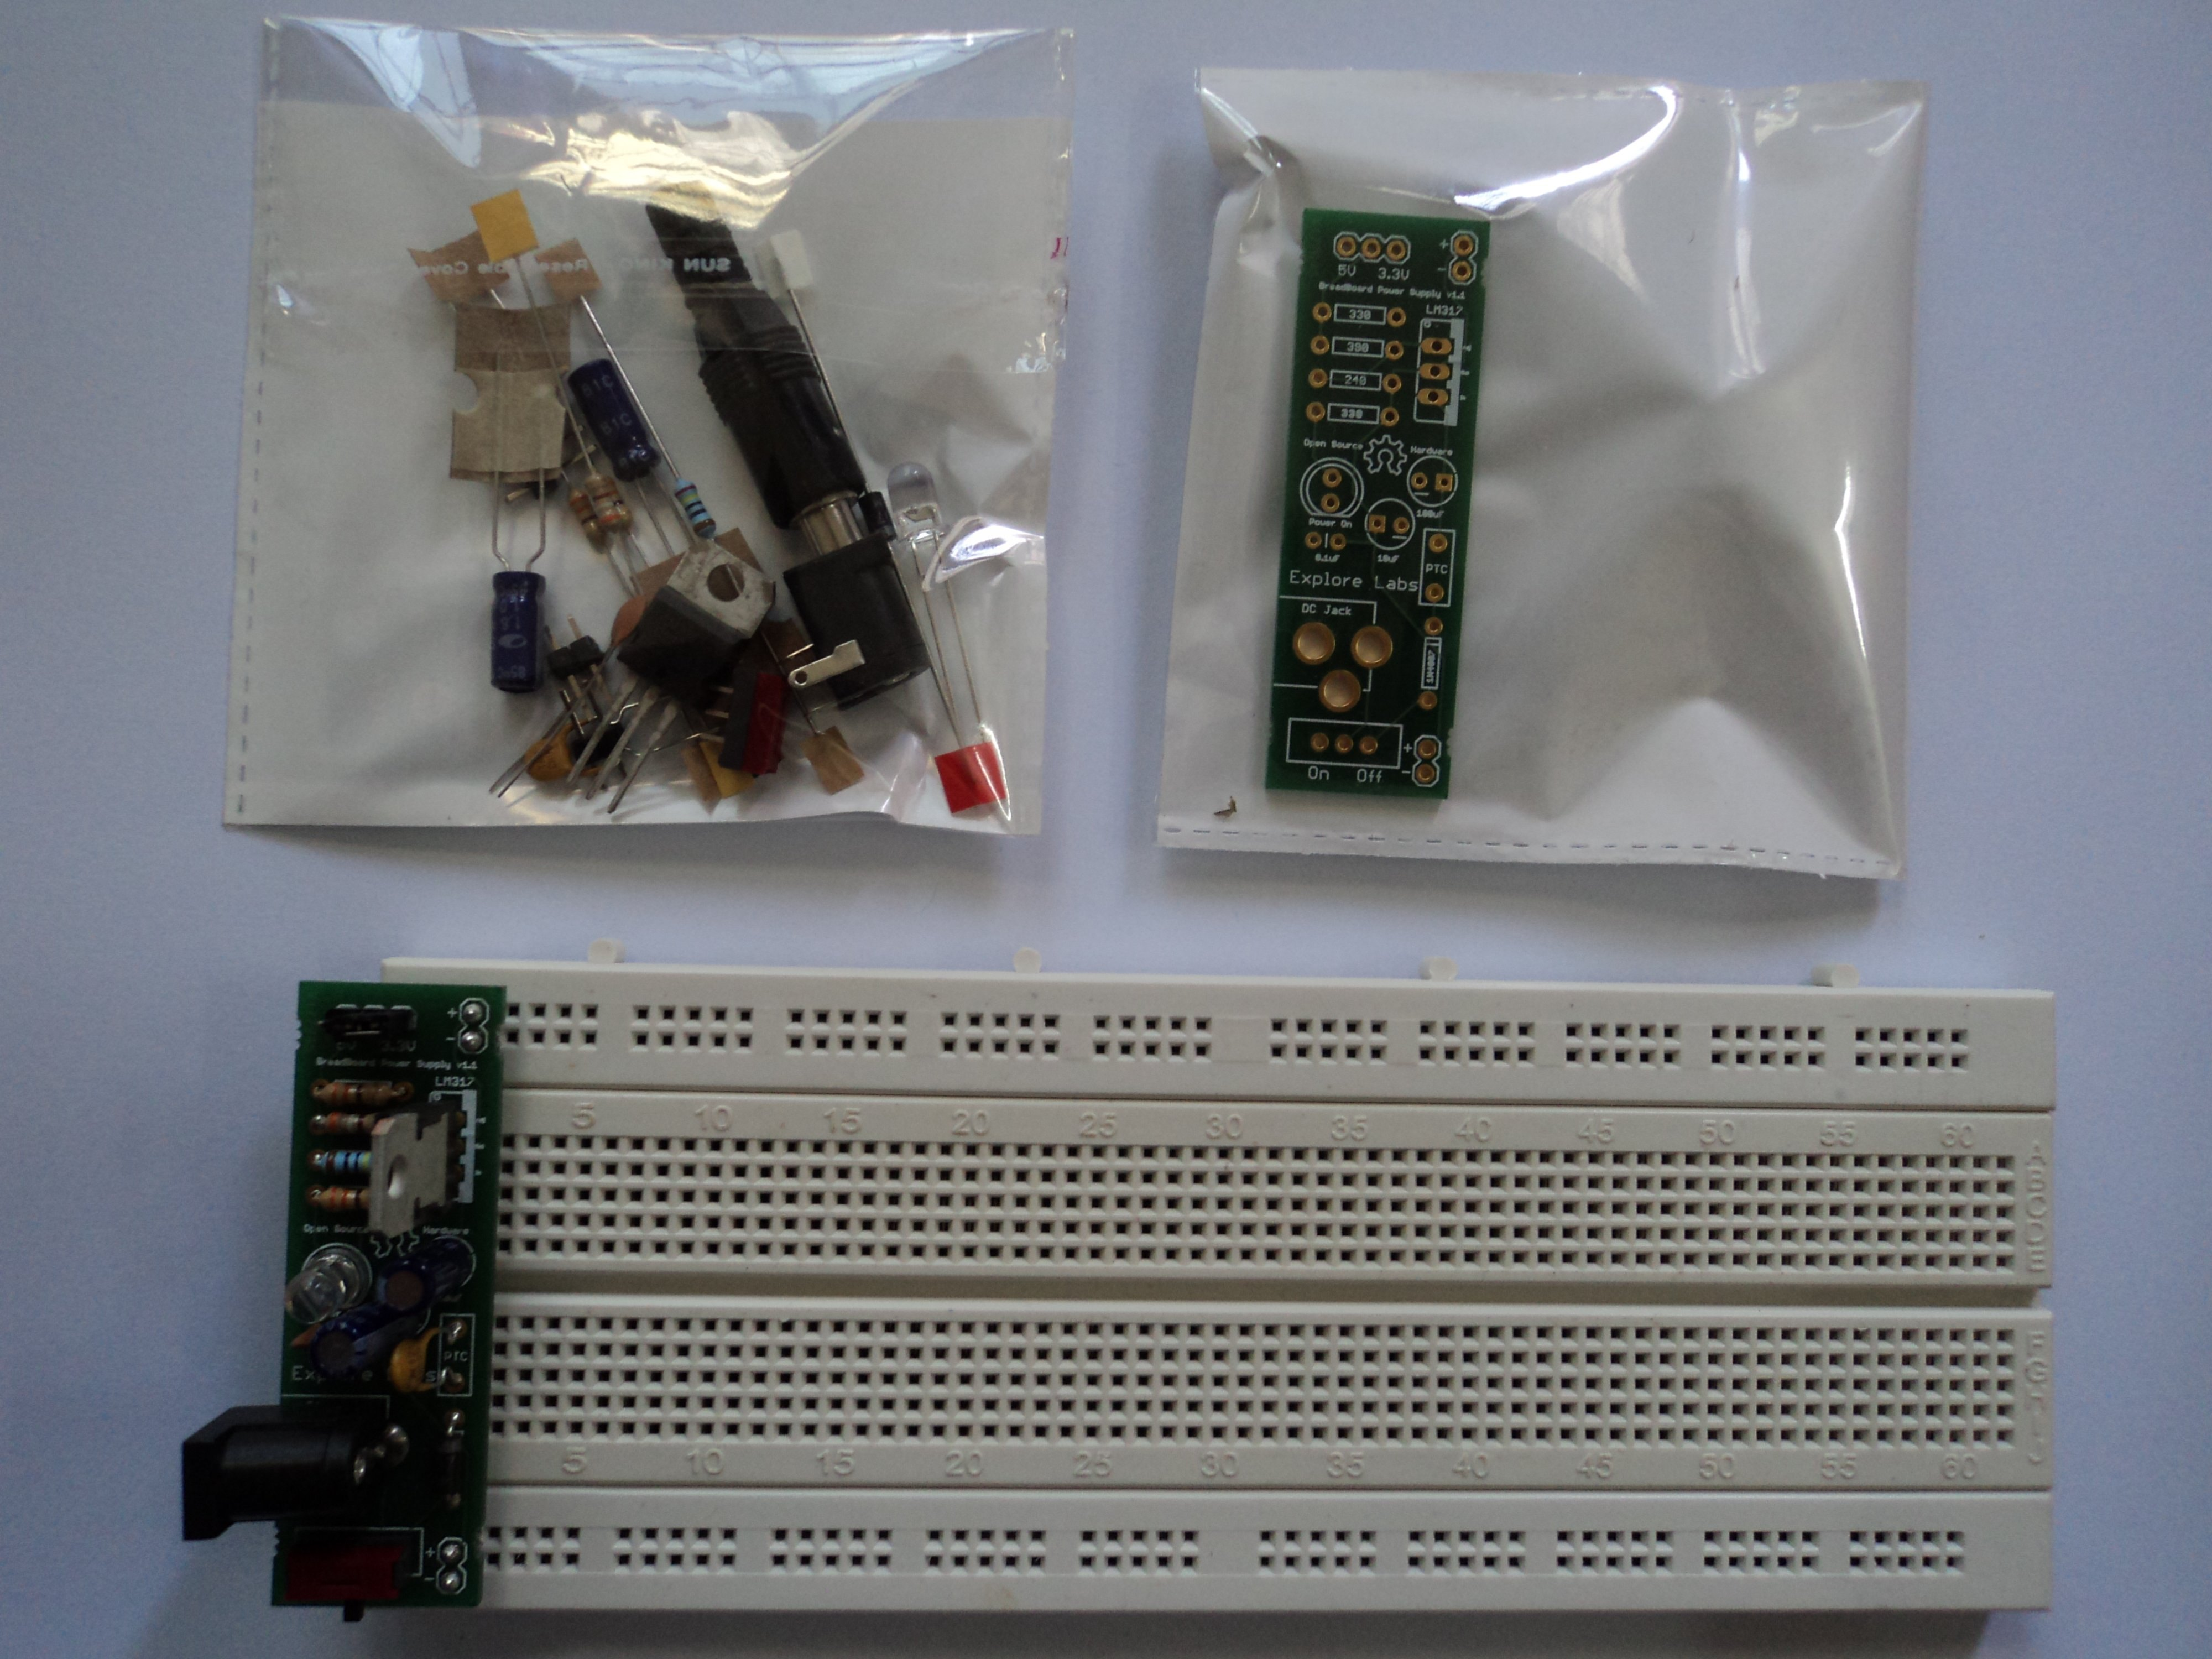 New Project: Making a BreadBoard Power Supply